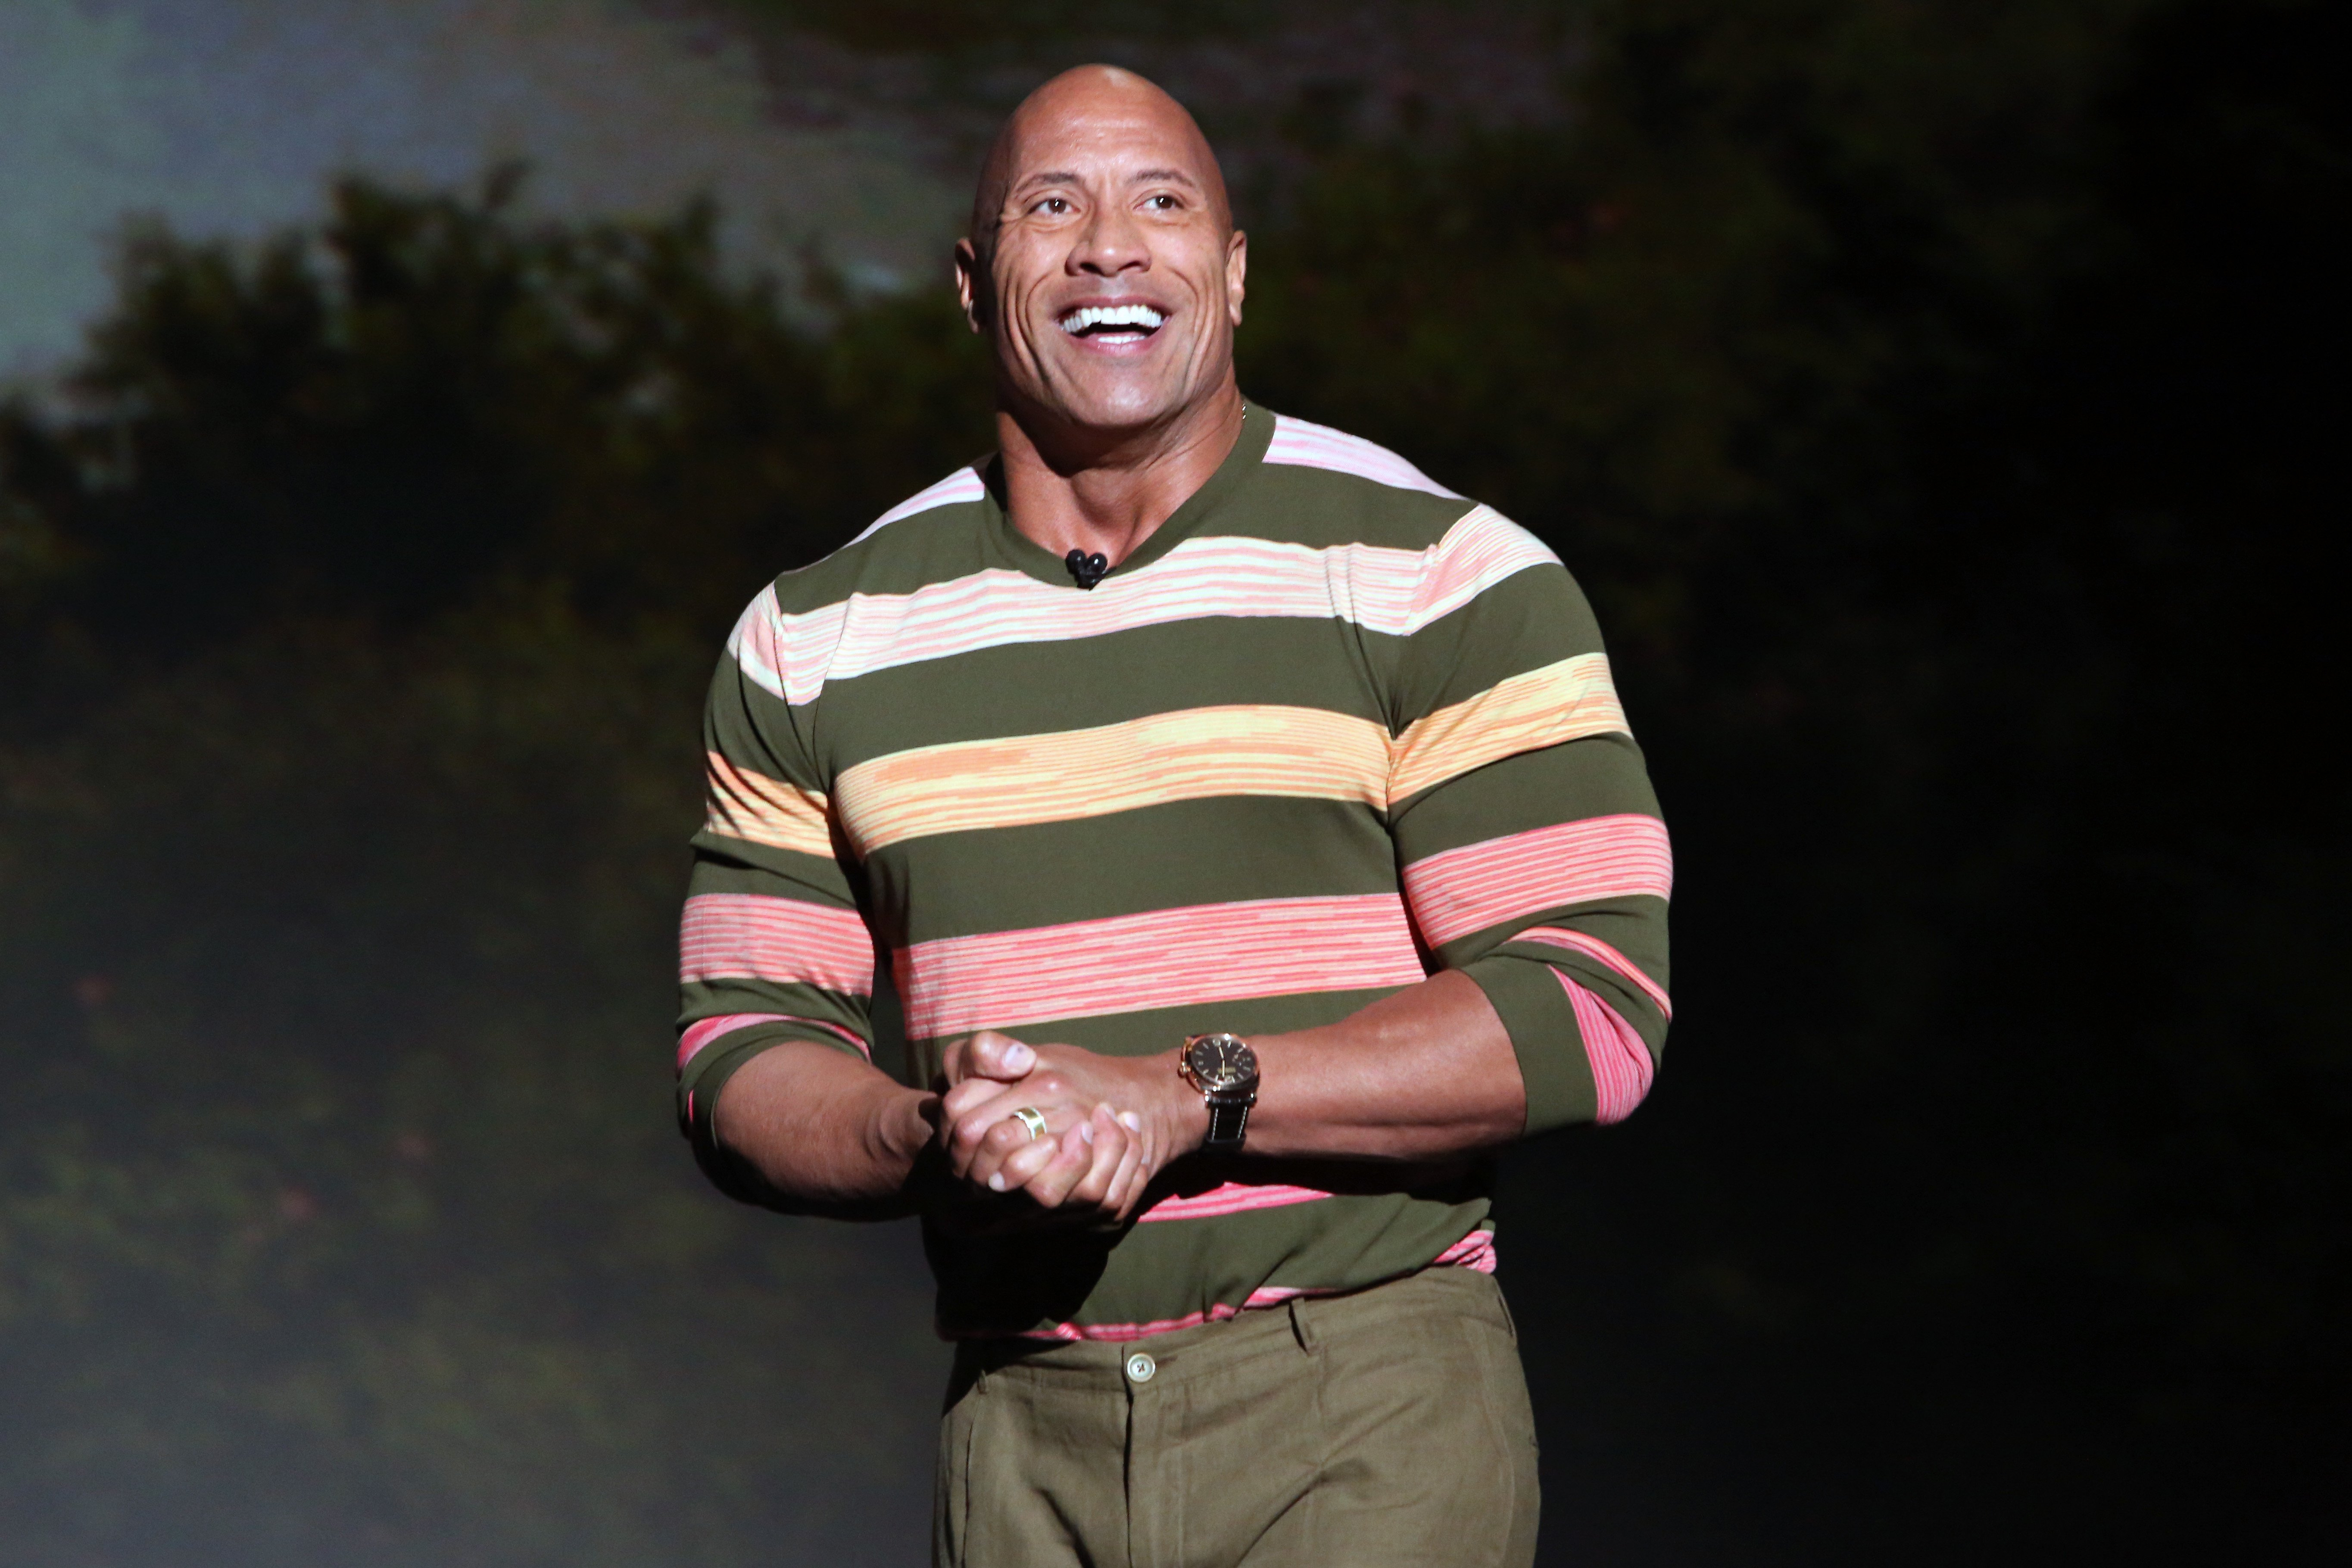 Dwayne Johnson at Disney's D23 EXPO in Anaheim, California | Photo: Getty Images